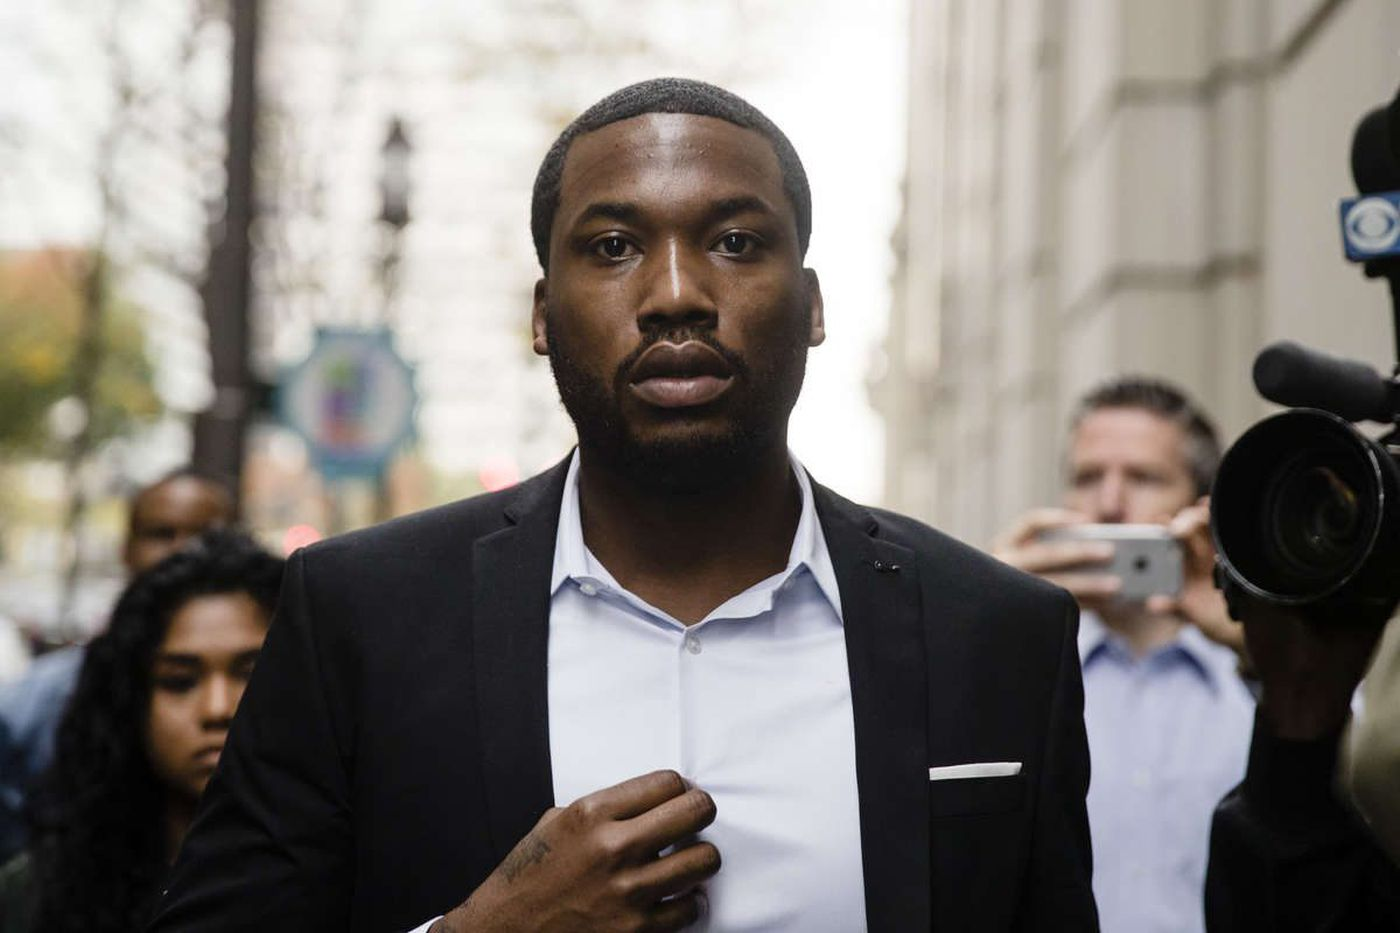 Meek Mill judge Genece Brinkley won't step down: 'This court committed no error'